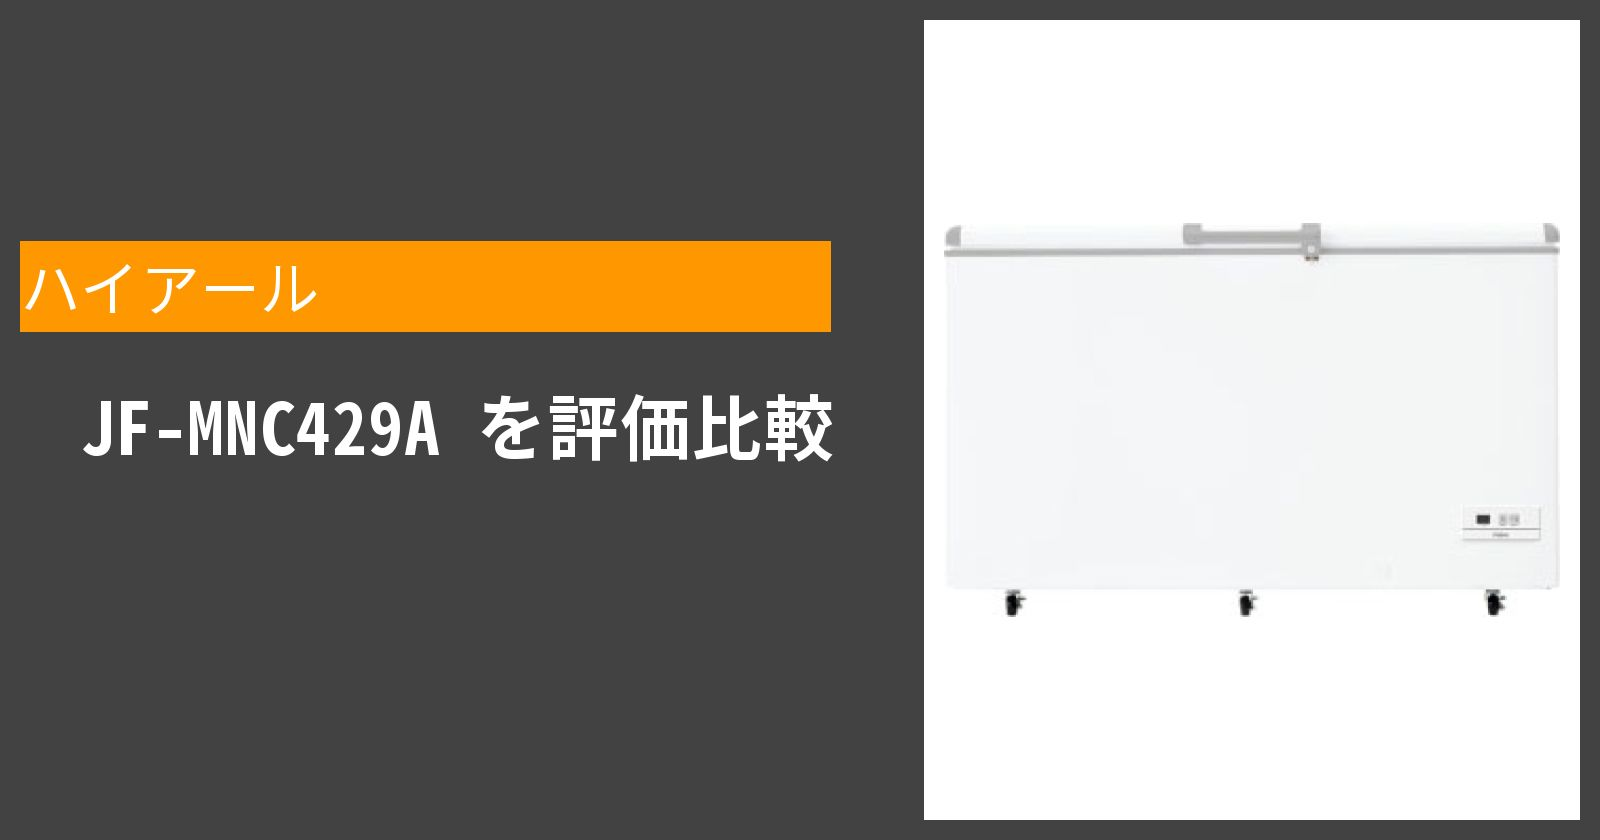 JF-MNC429Aを徹底評価